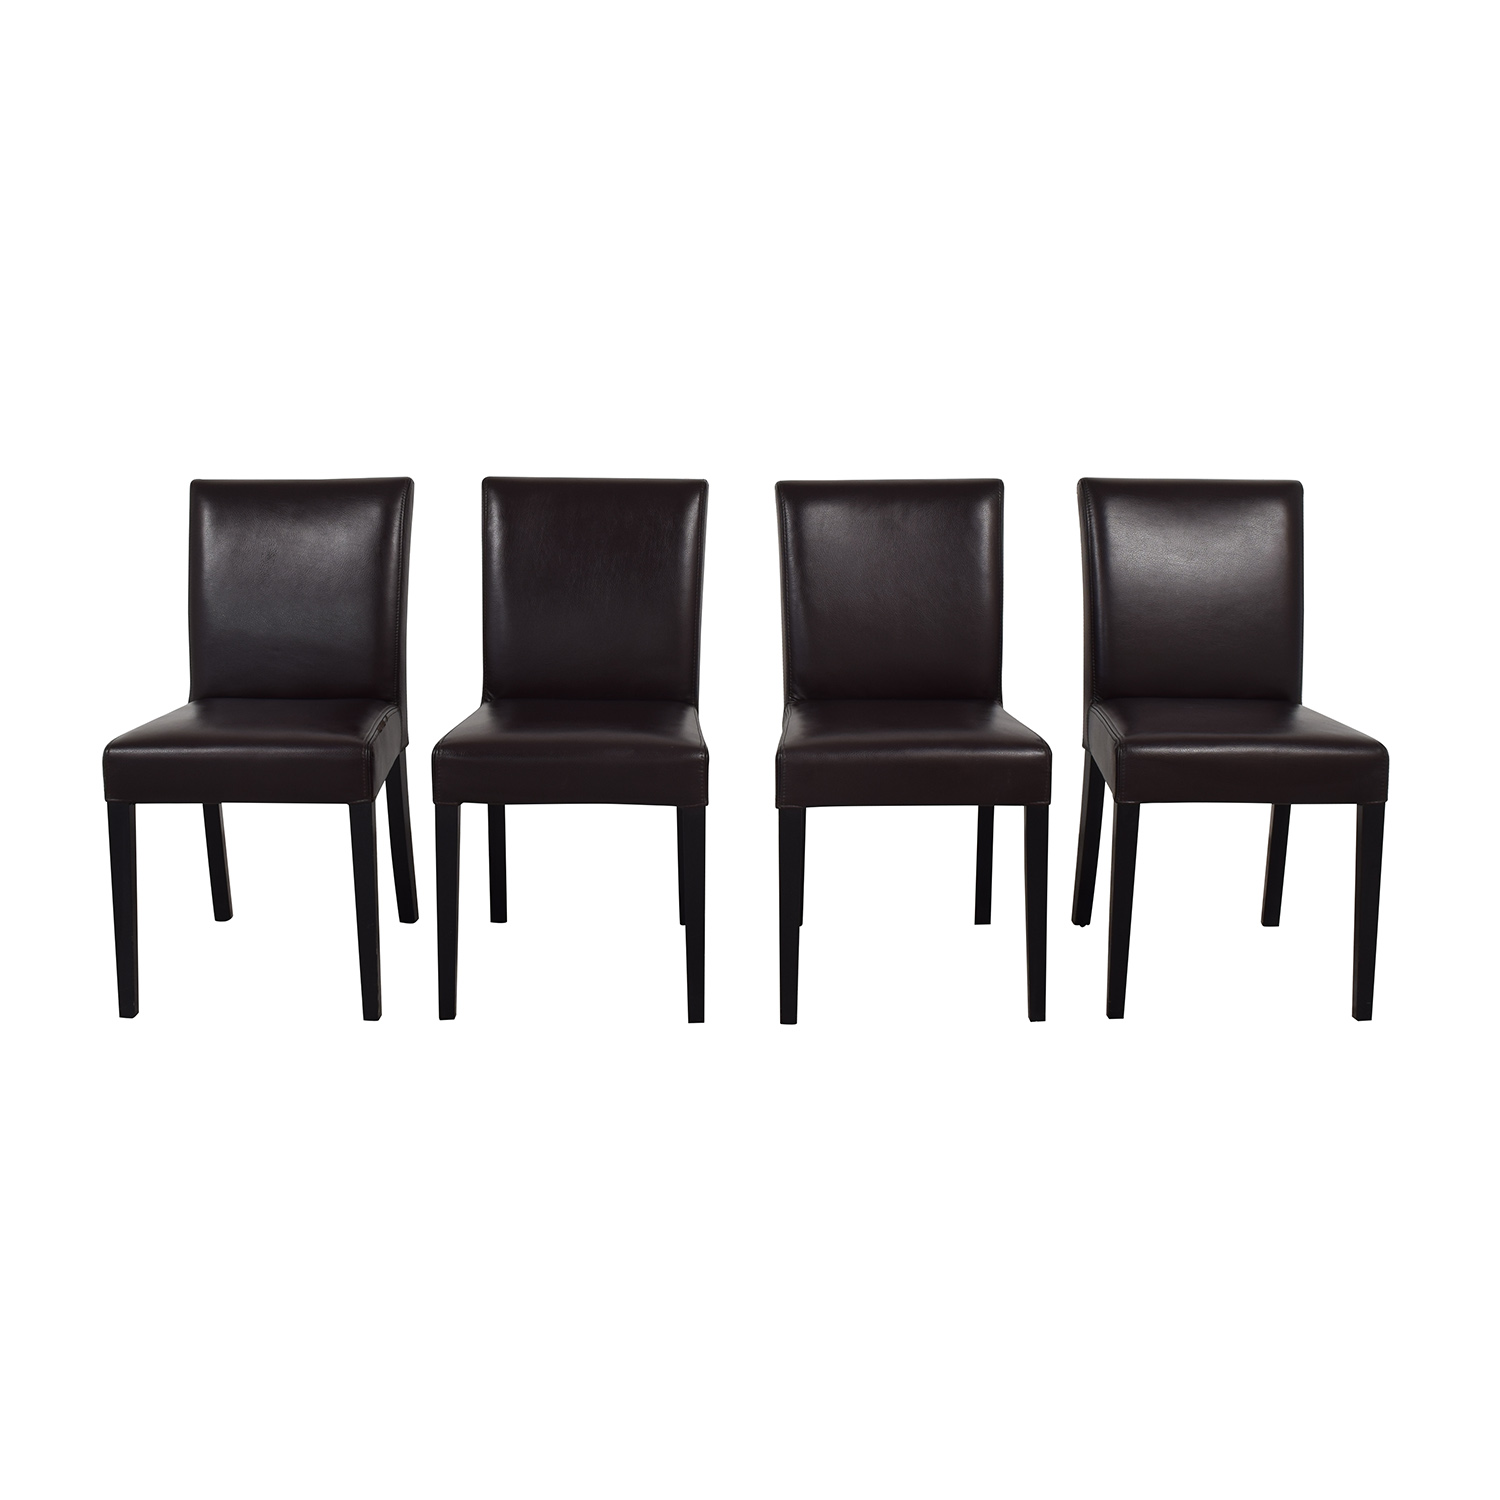 Crate & Barrel Crate & Barrel Lowe Dining Chairs price